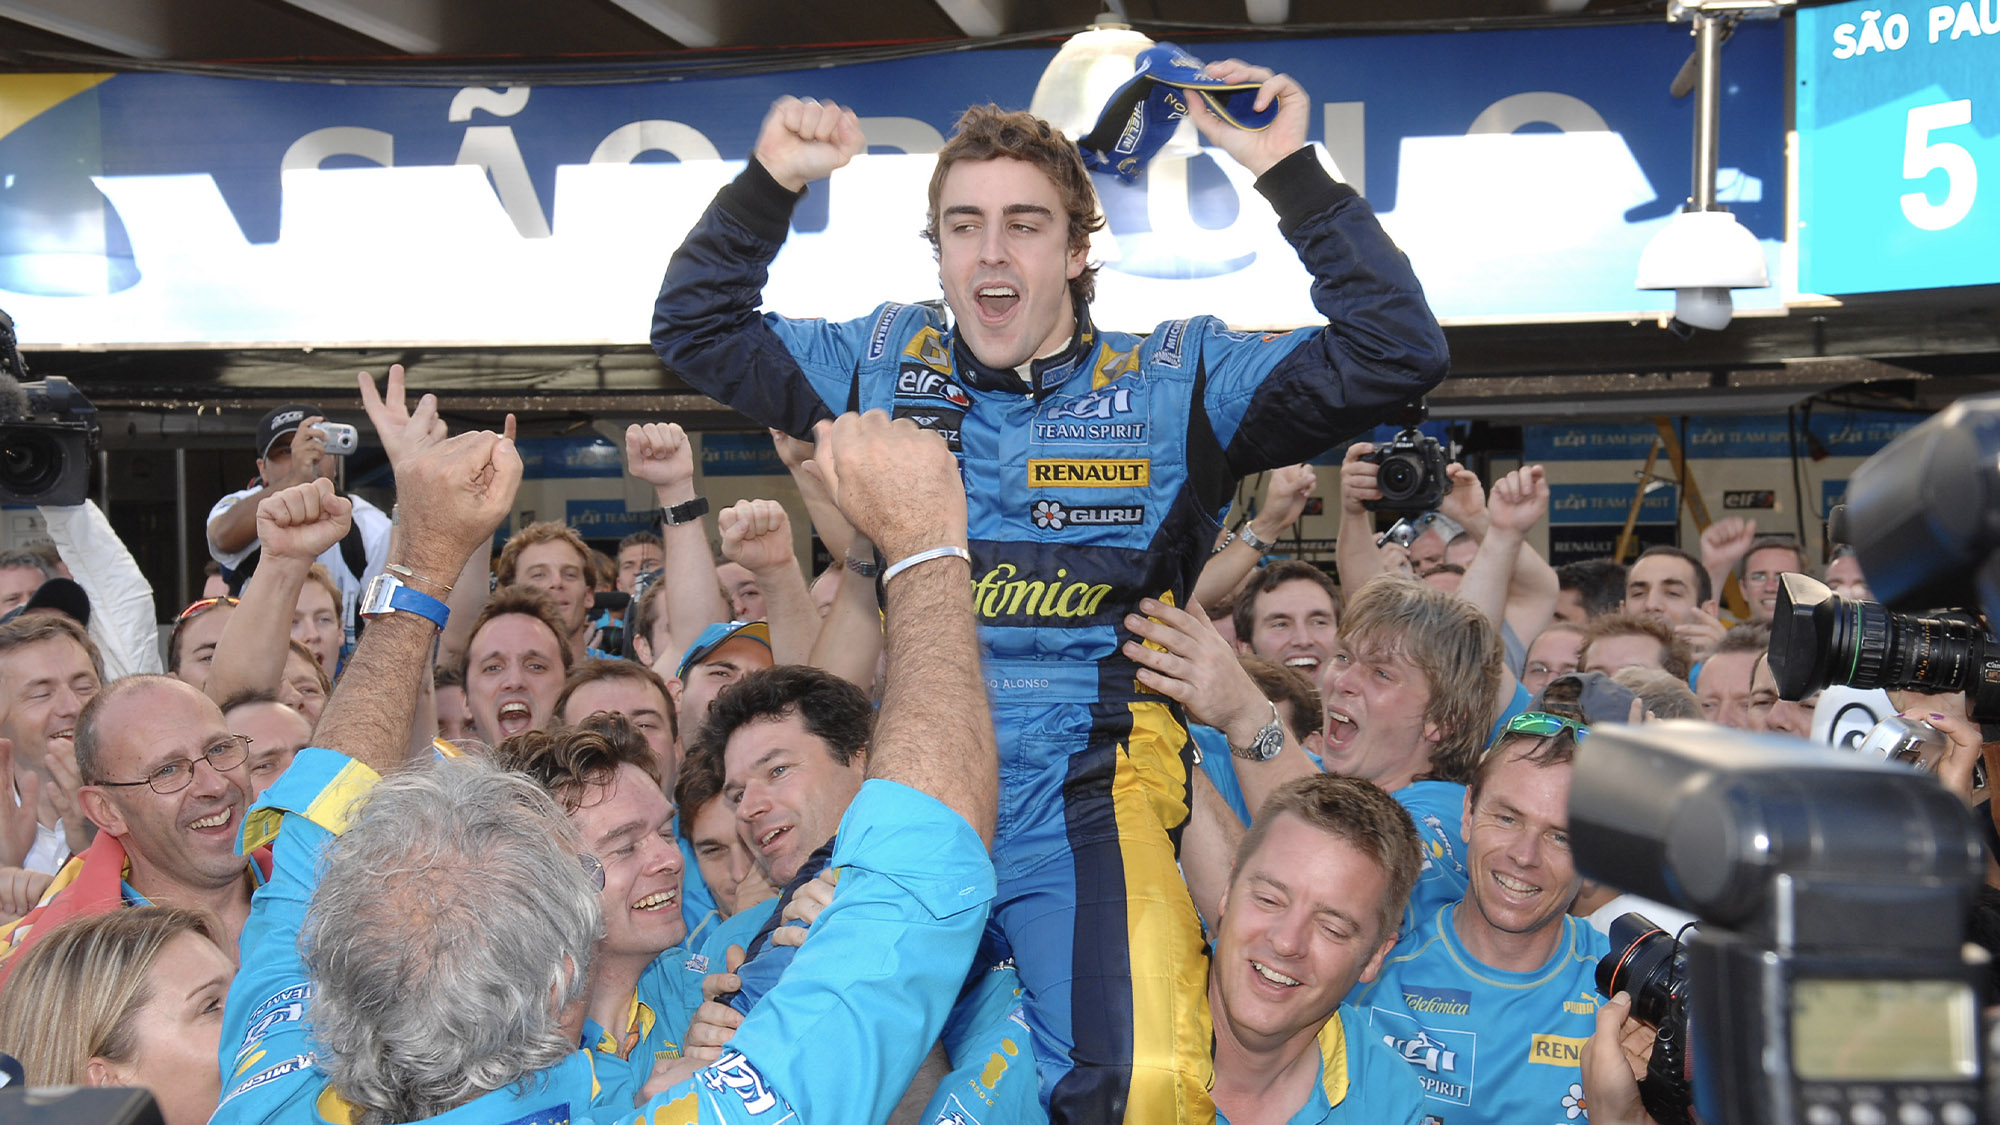 Fernando Alonso celebrates winning the 2006 F1 championship at Interlagos after the Brazilian Grand Prix